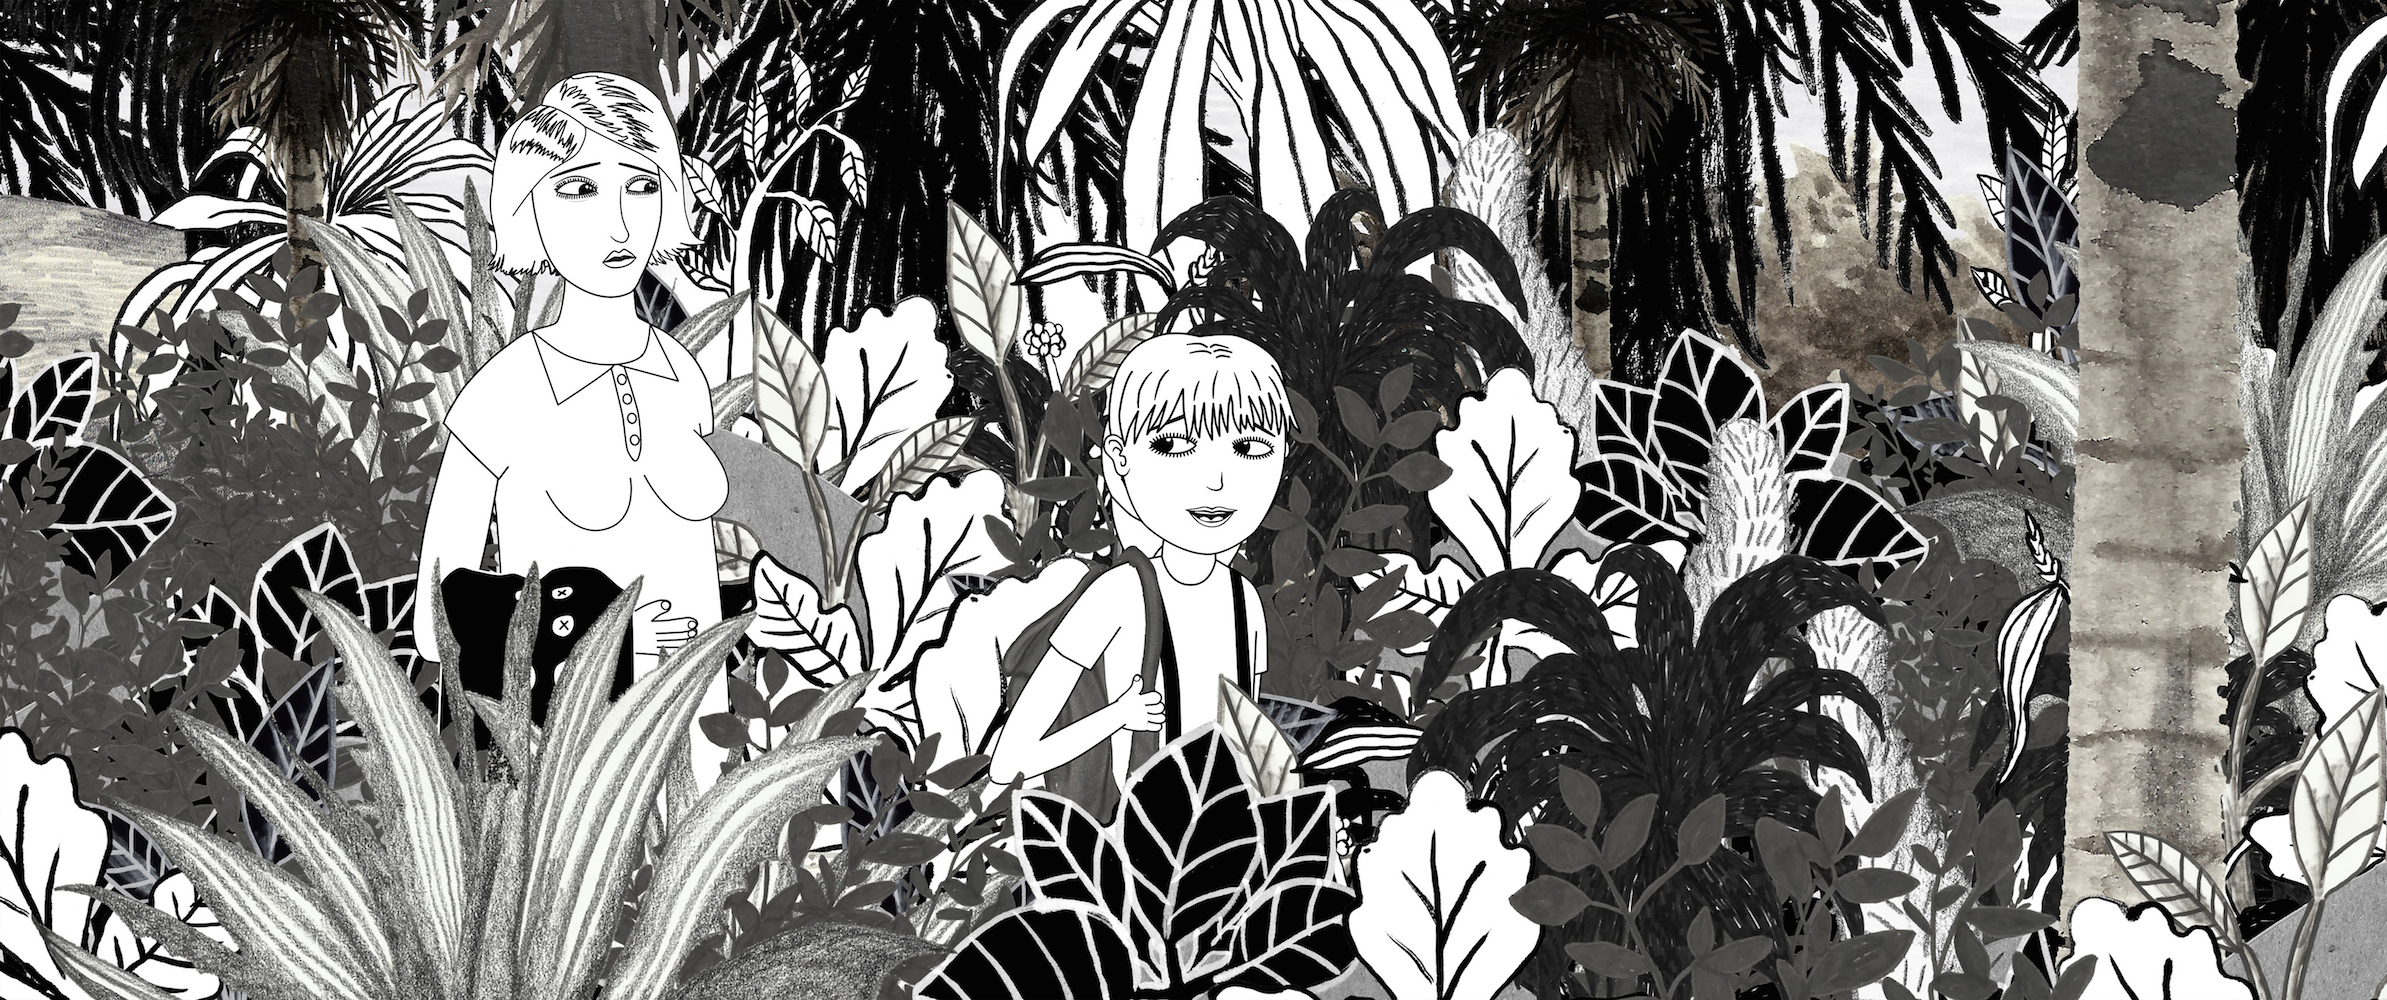 Power Paola On Turning Her Coming-of-Age Graphic Novel Into an Animated Movie